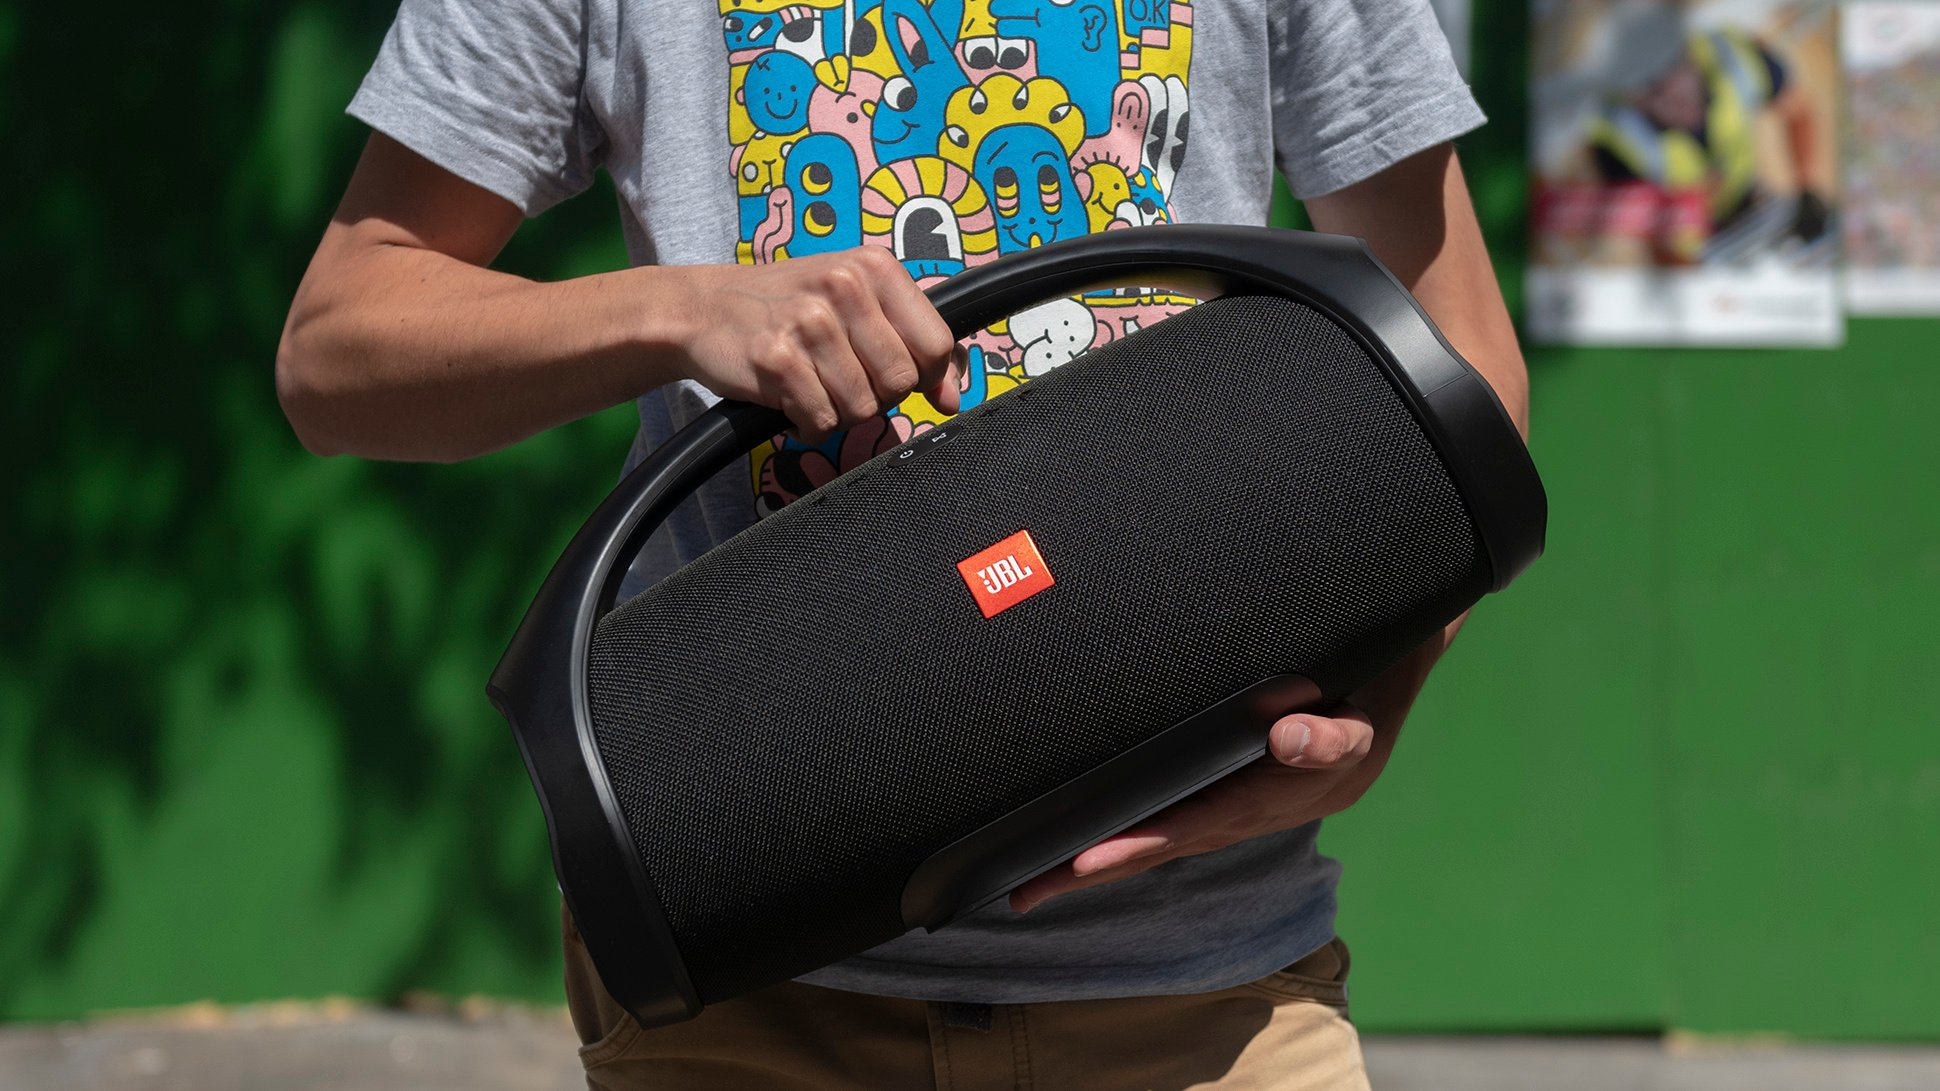 jbl boombox review the best bluetooth speaker for bass expert reviews. Black Bedroom Furniture Sets. Home Design Ideas